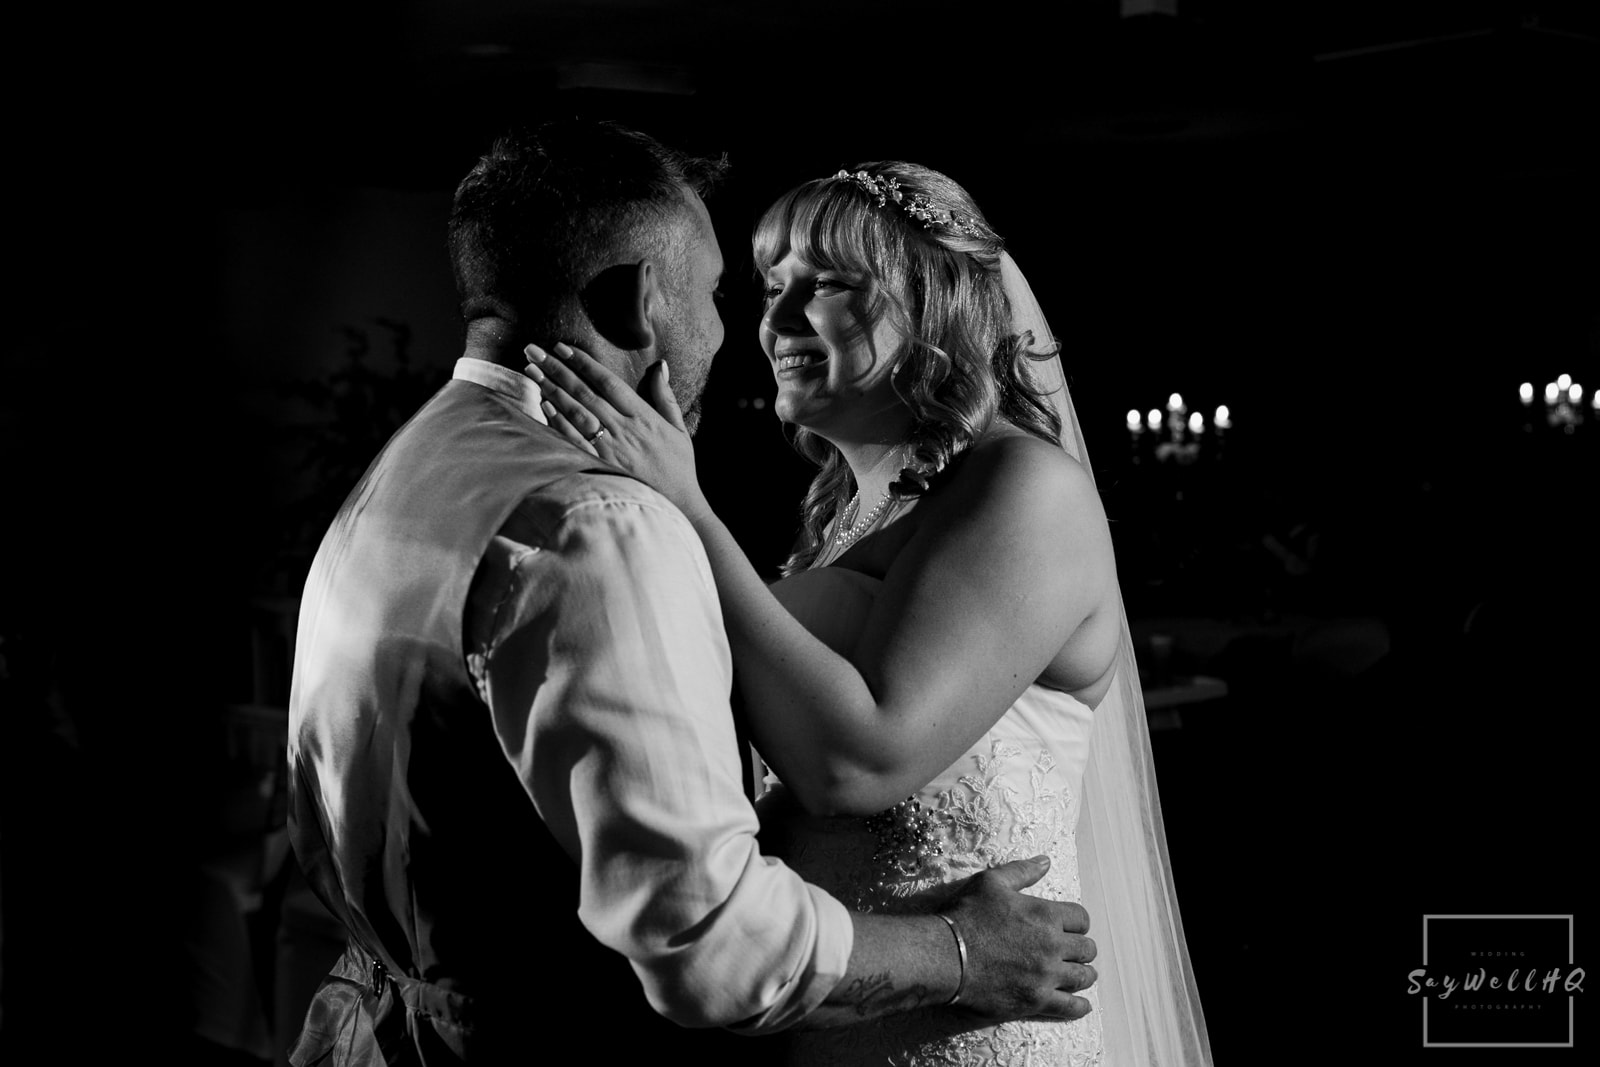 Woodborough Hall Wedding Photography + Bride and Groom first dance in black and white